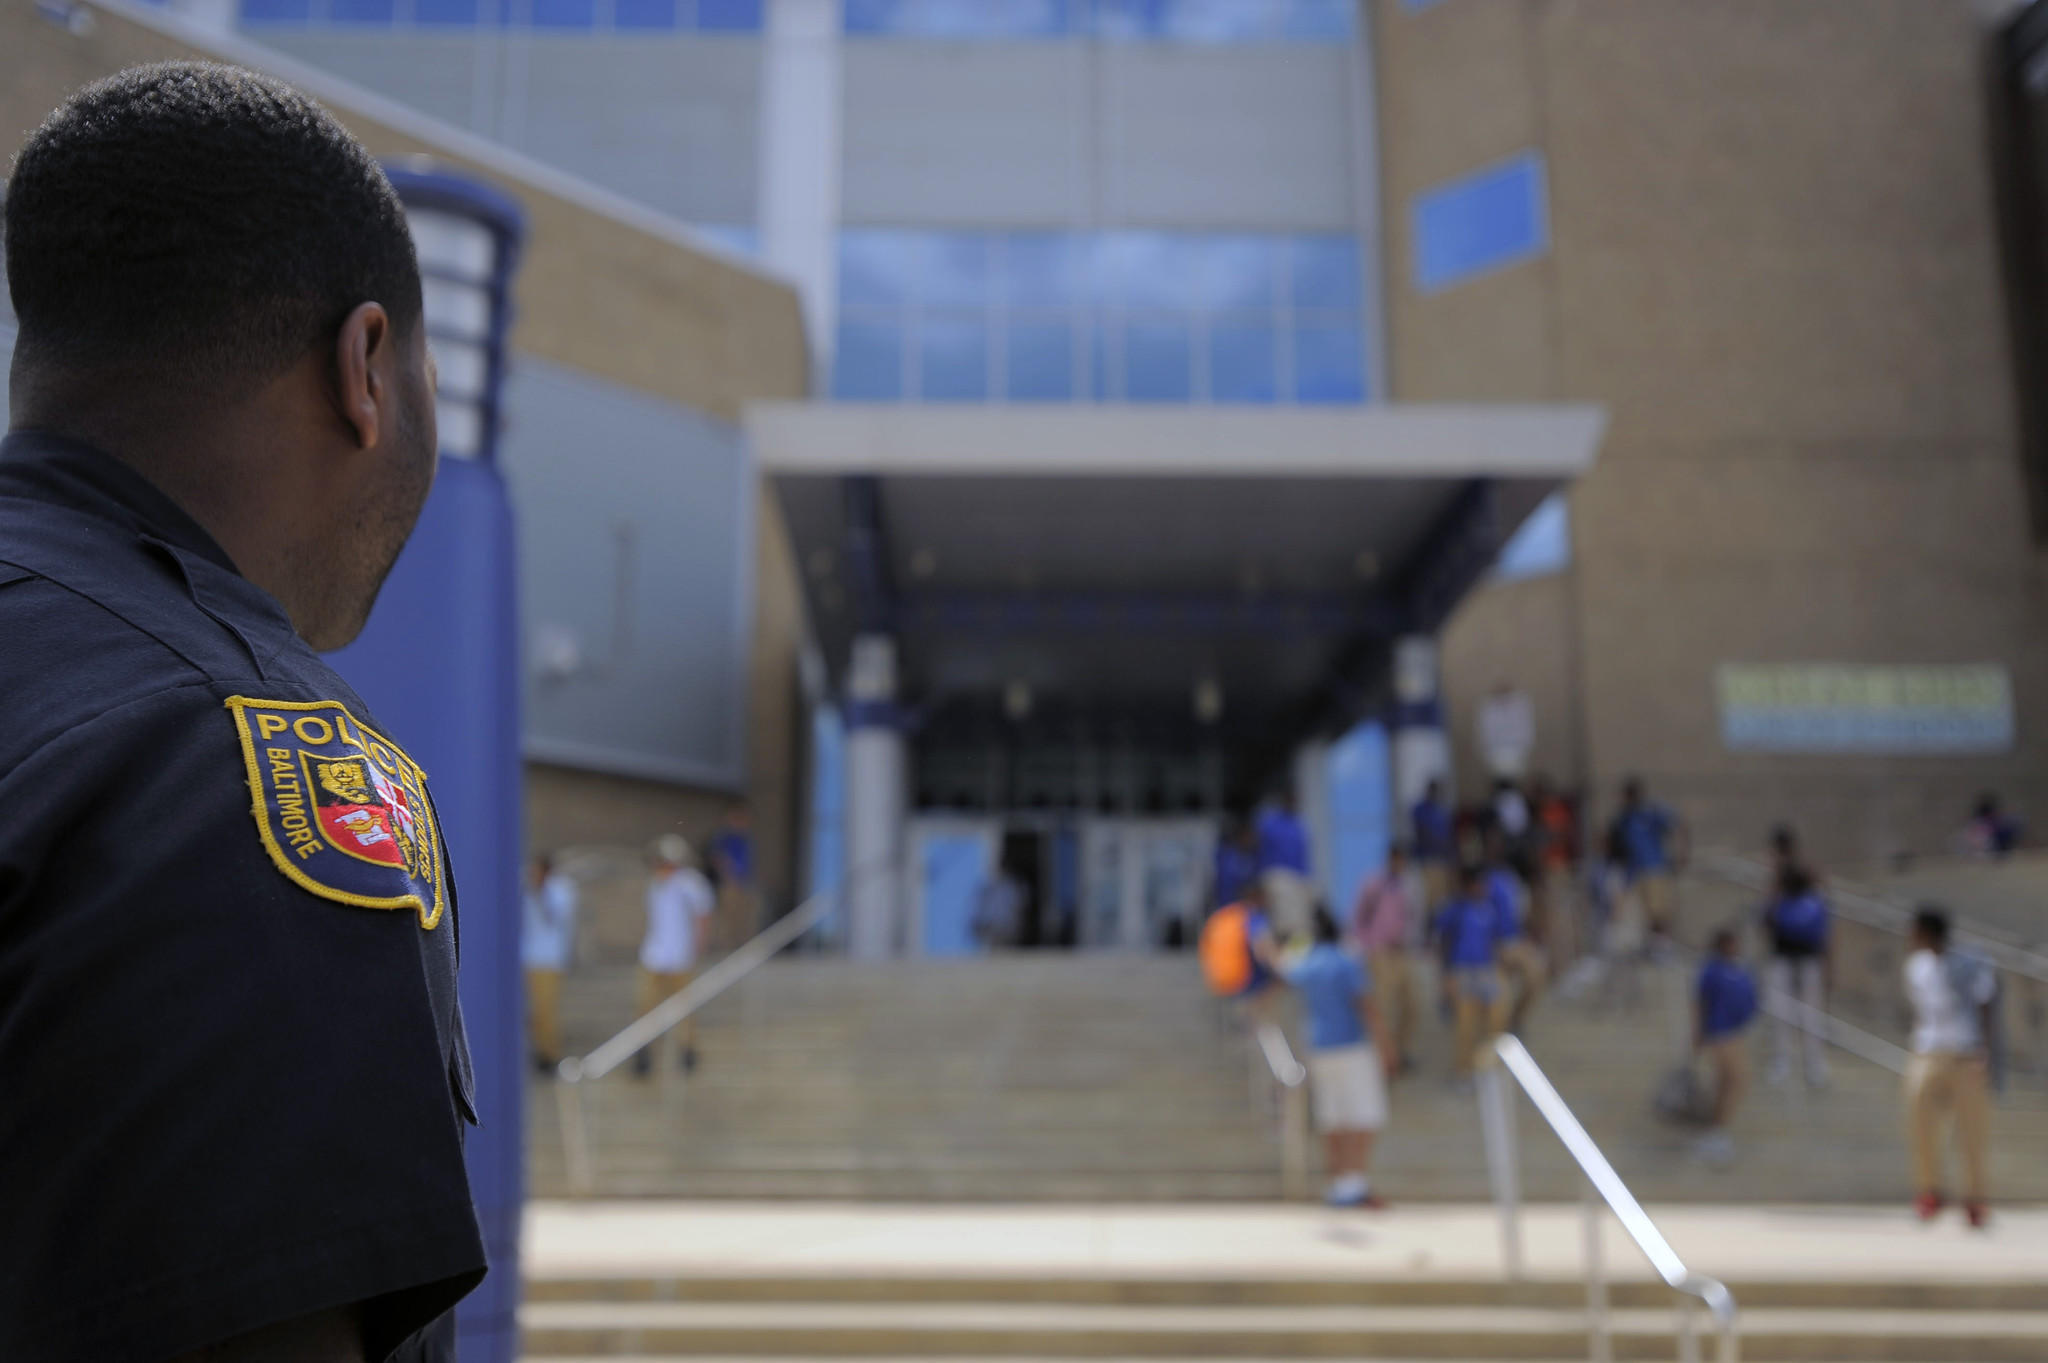 A Baltimore School Police officer observes the scene as school lets out.